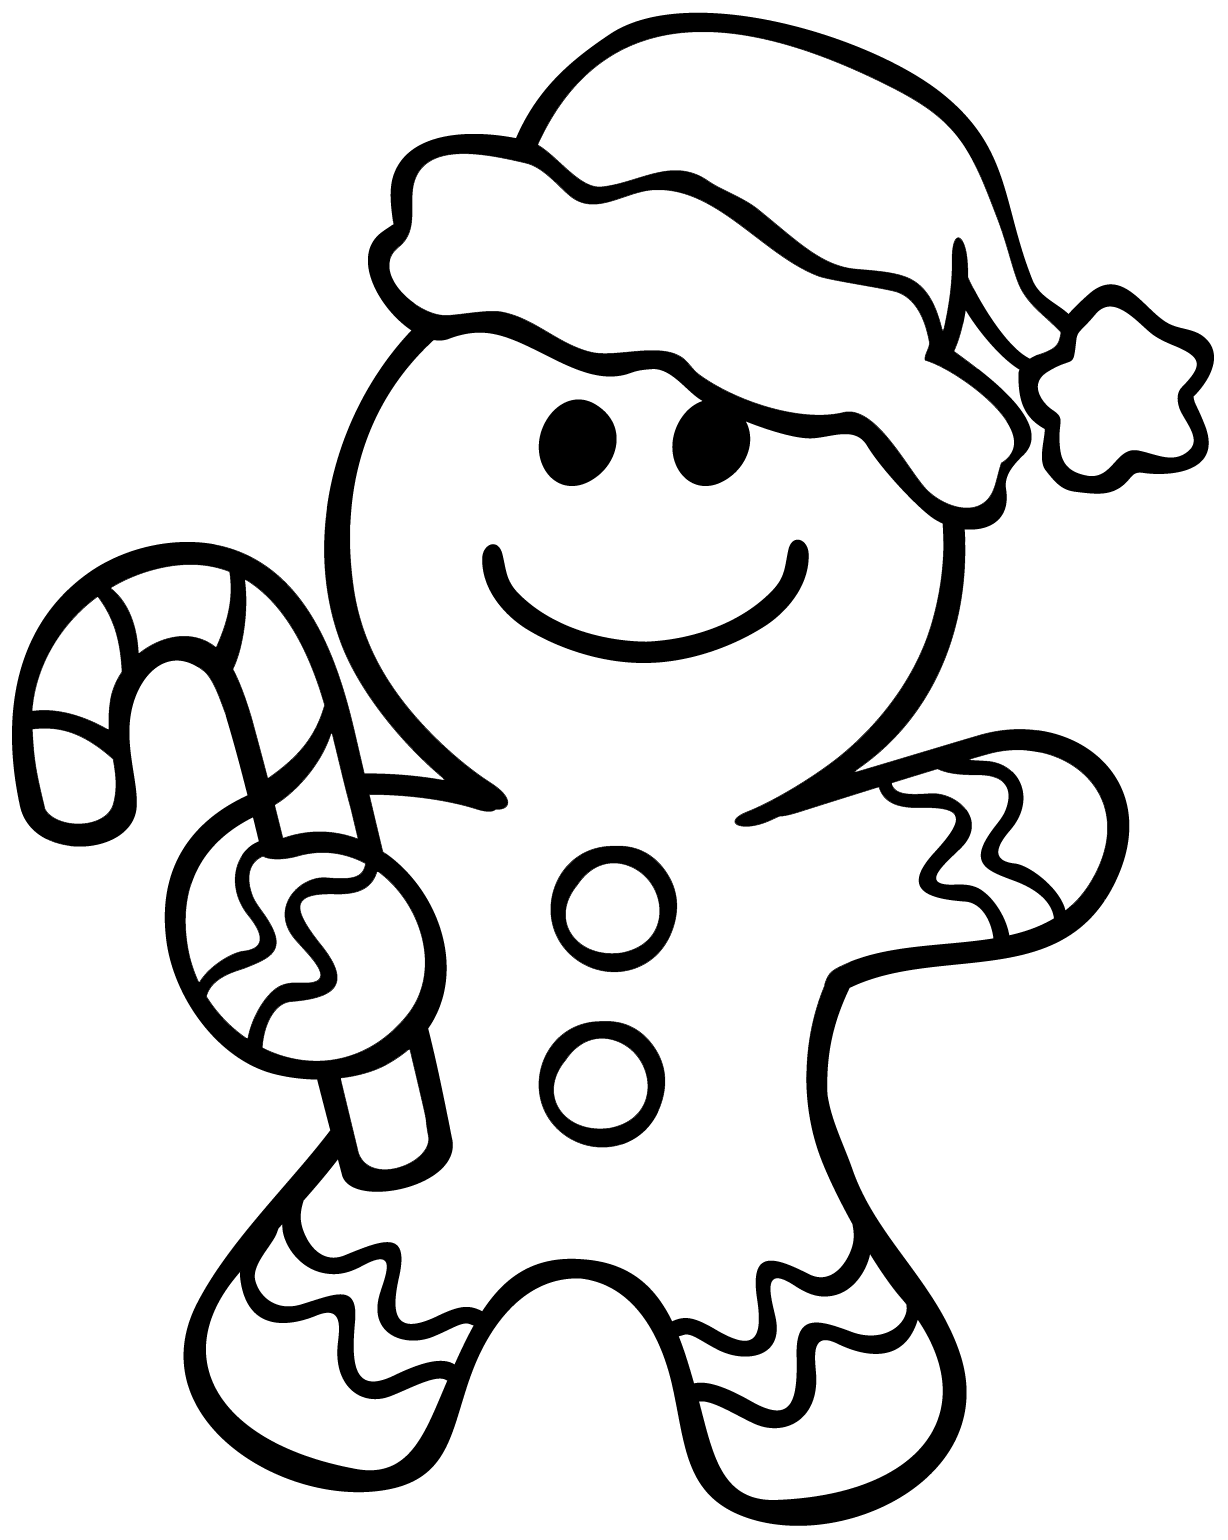 Gingerbread Man Outline Free Download Best Gingerbread Man Outline